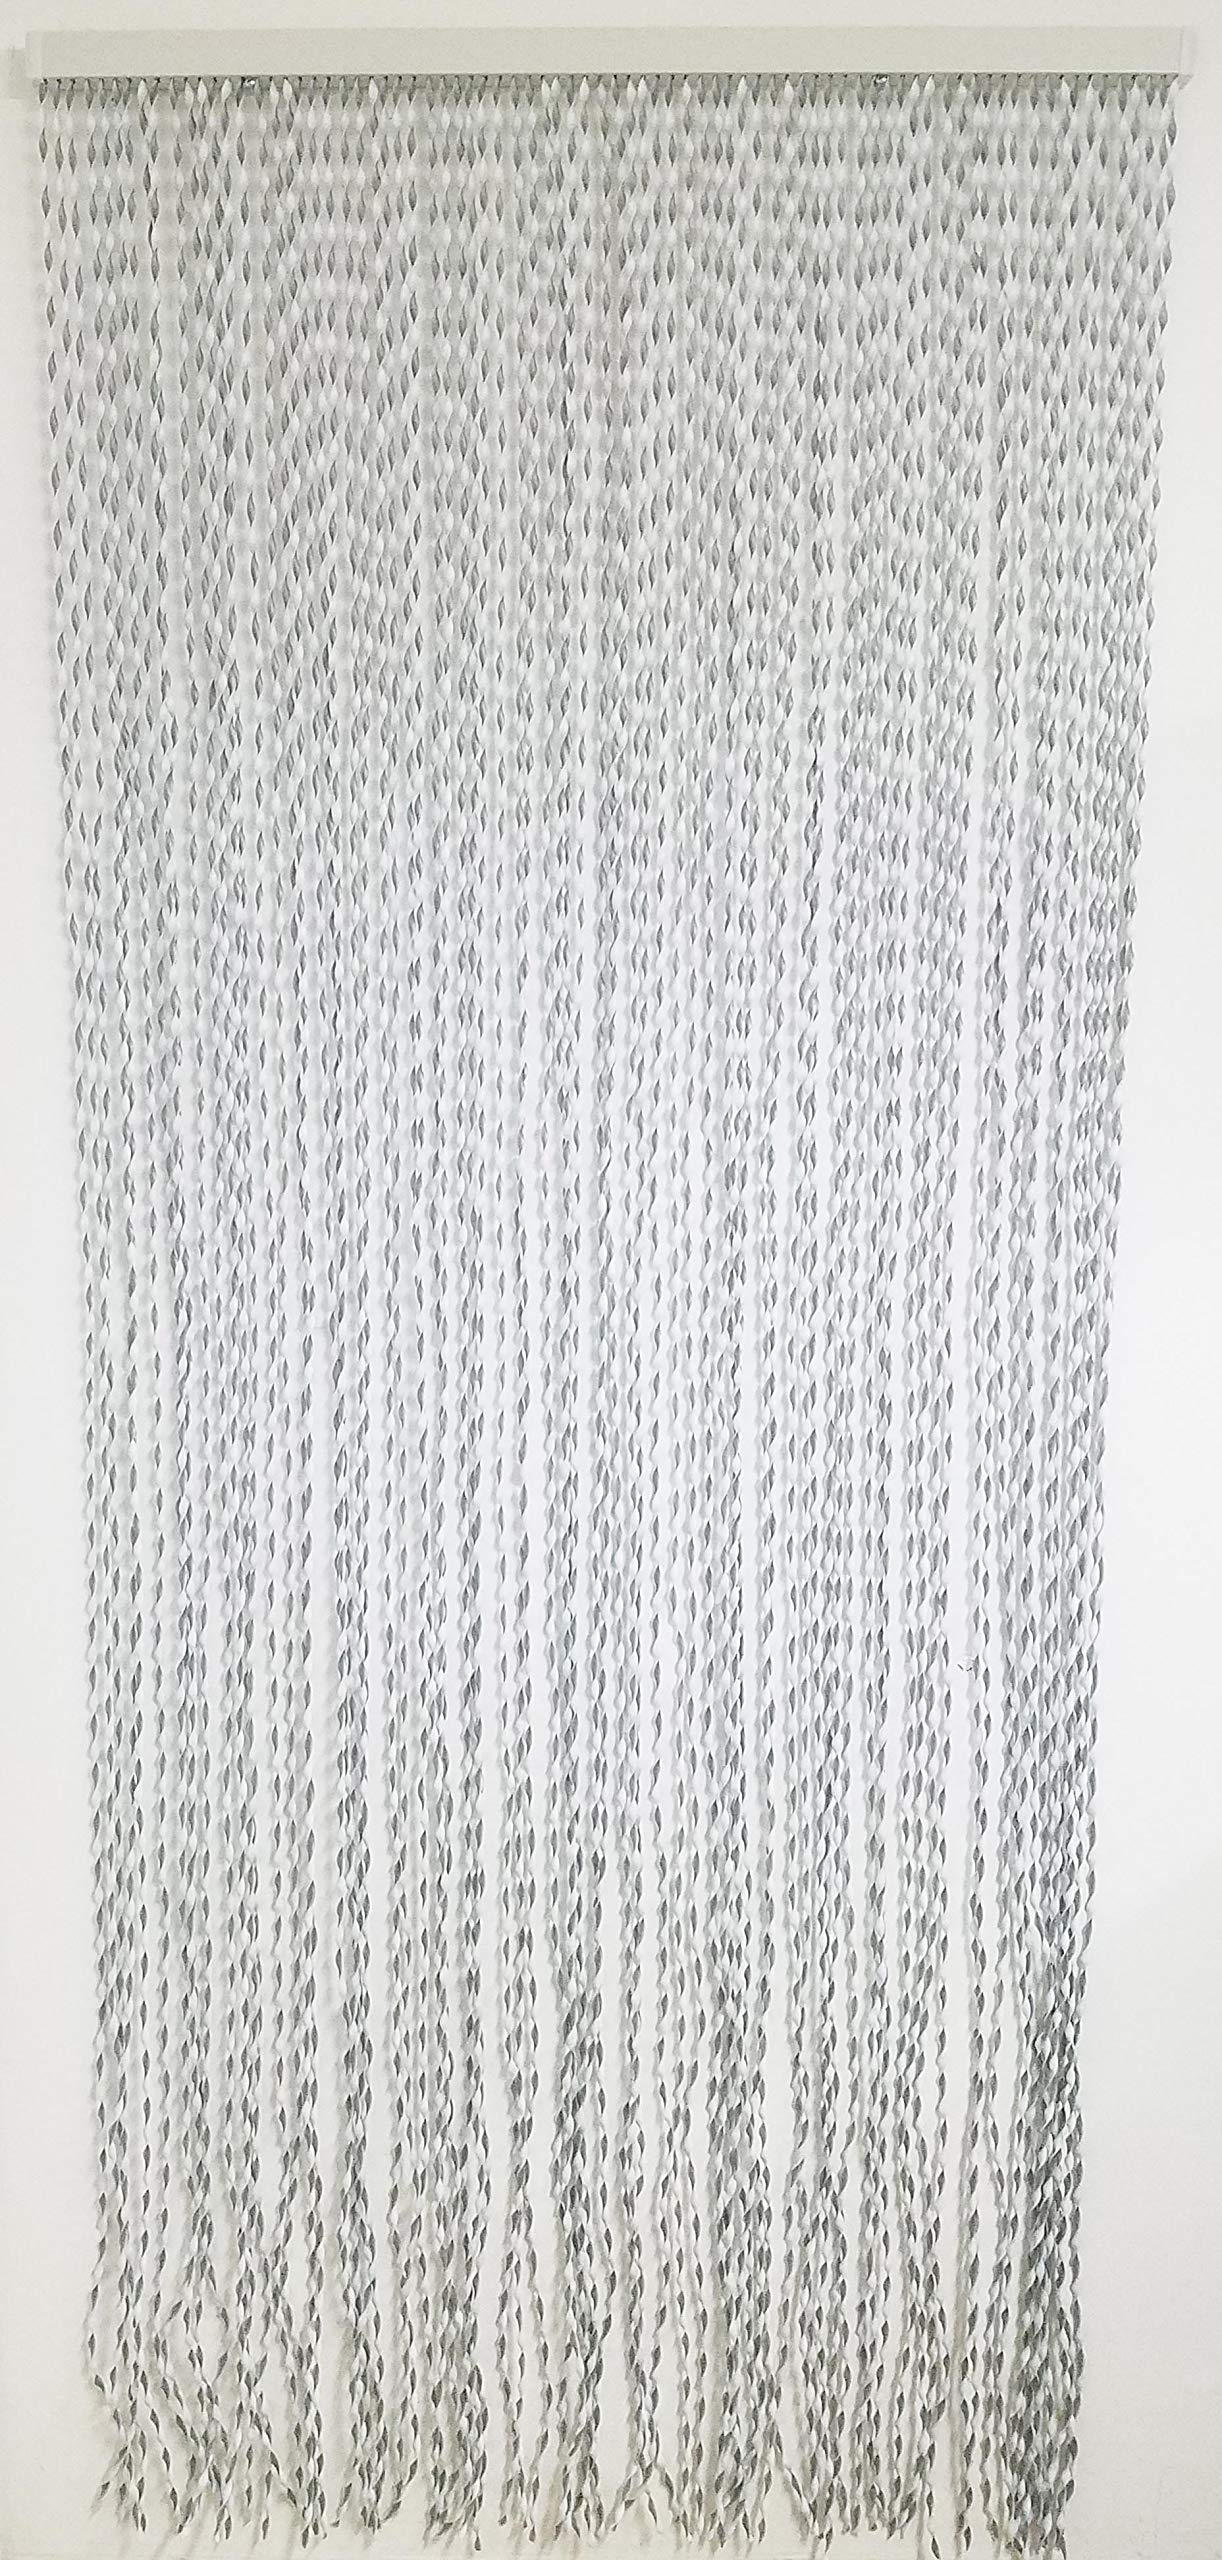 EVIDECO PVC Stripes Twisted Curtain Doorway 80 Strings Grey/White 82.7'' H x 35.5'' W, 82.7H x 35.5 Inch /210x90 cm,